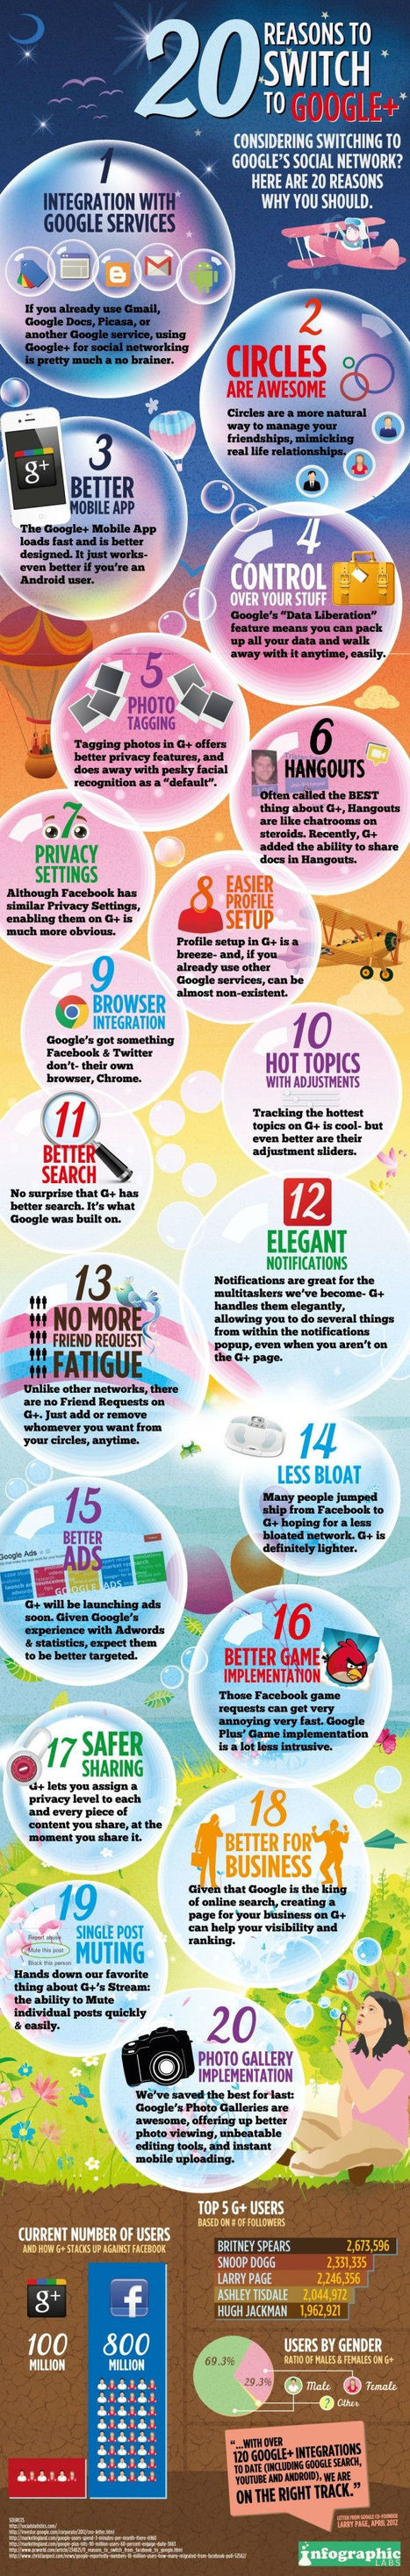 20 Reasons to Switch to Google+ [INFOGRAPHIC] | Social media influence tips | Scoop.it